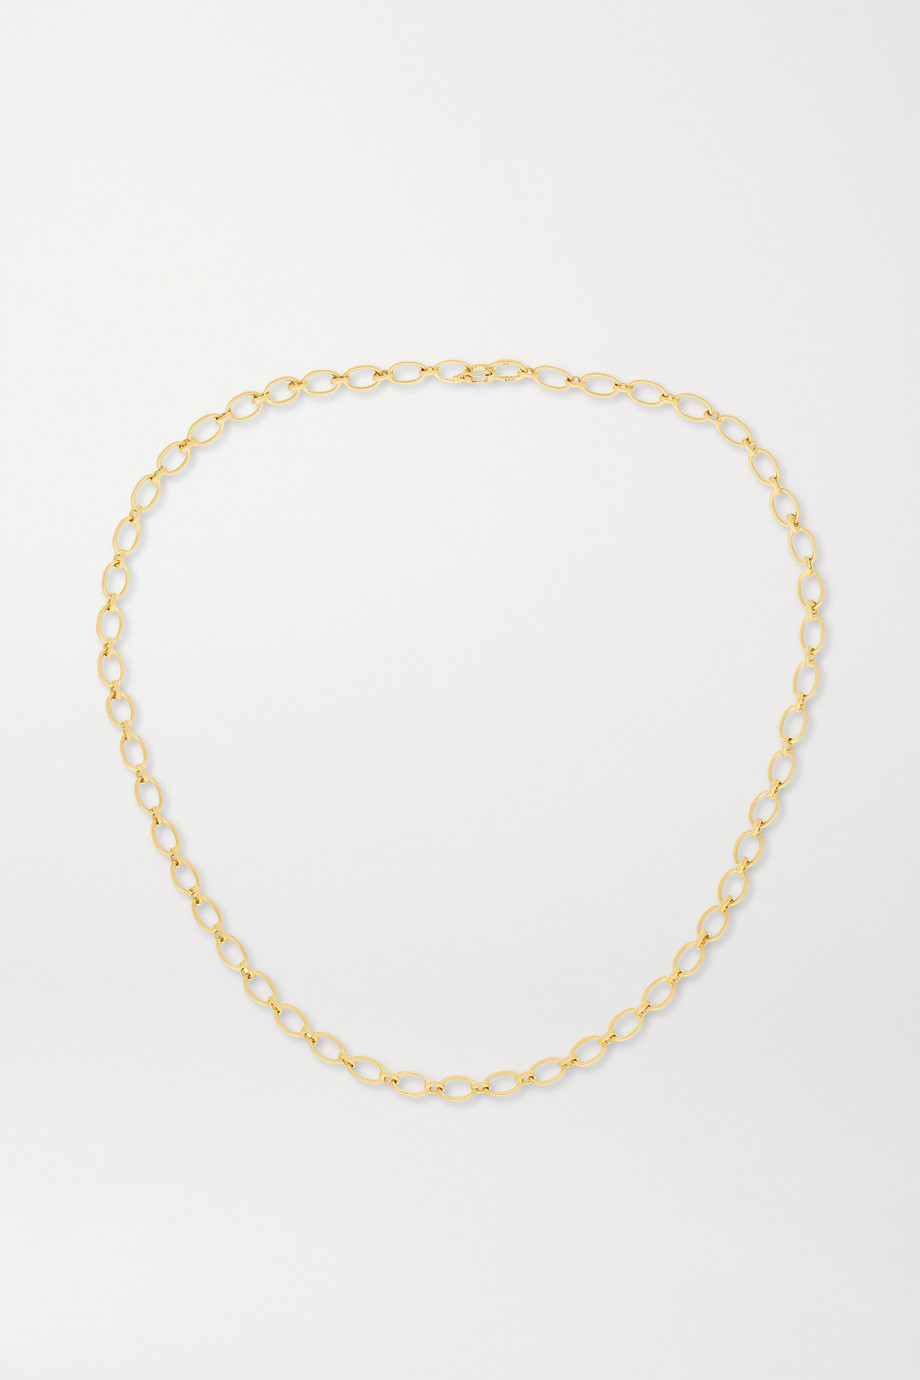 Irene Neuwirth Classic 18-karat gold necklace